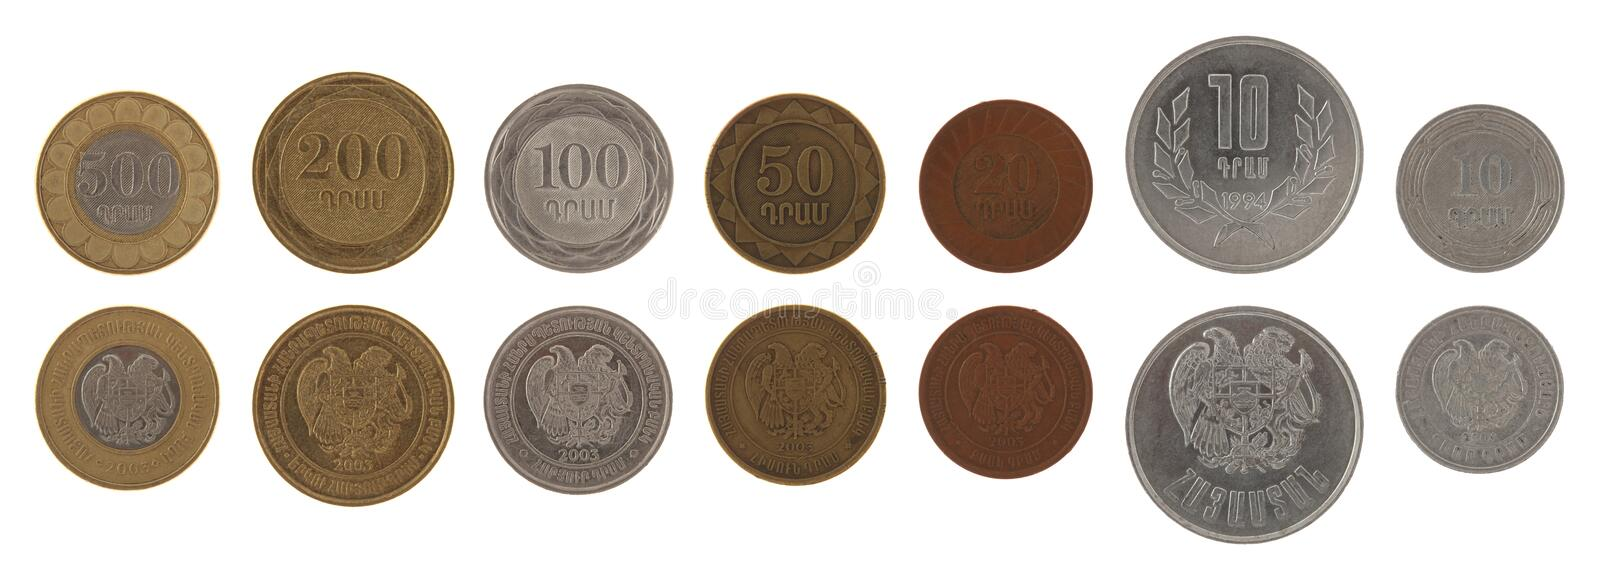 Download Armenian Coins Isolated On White Stock Photo - Image: 26945512